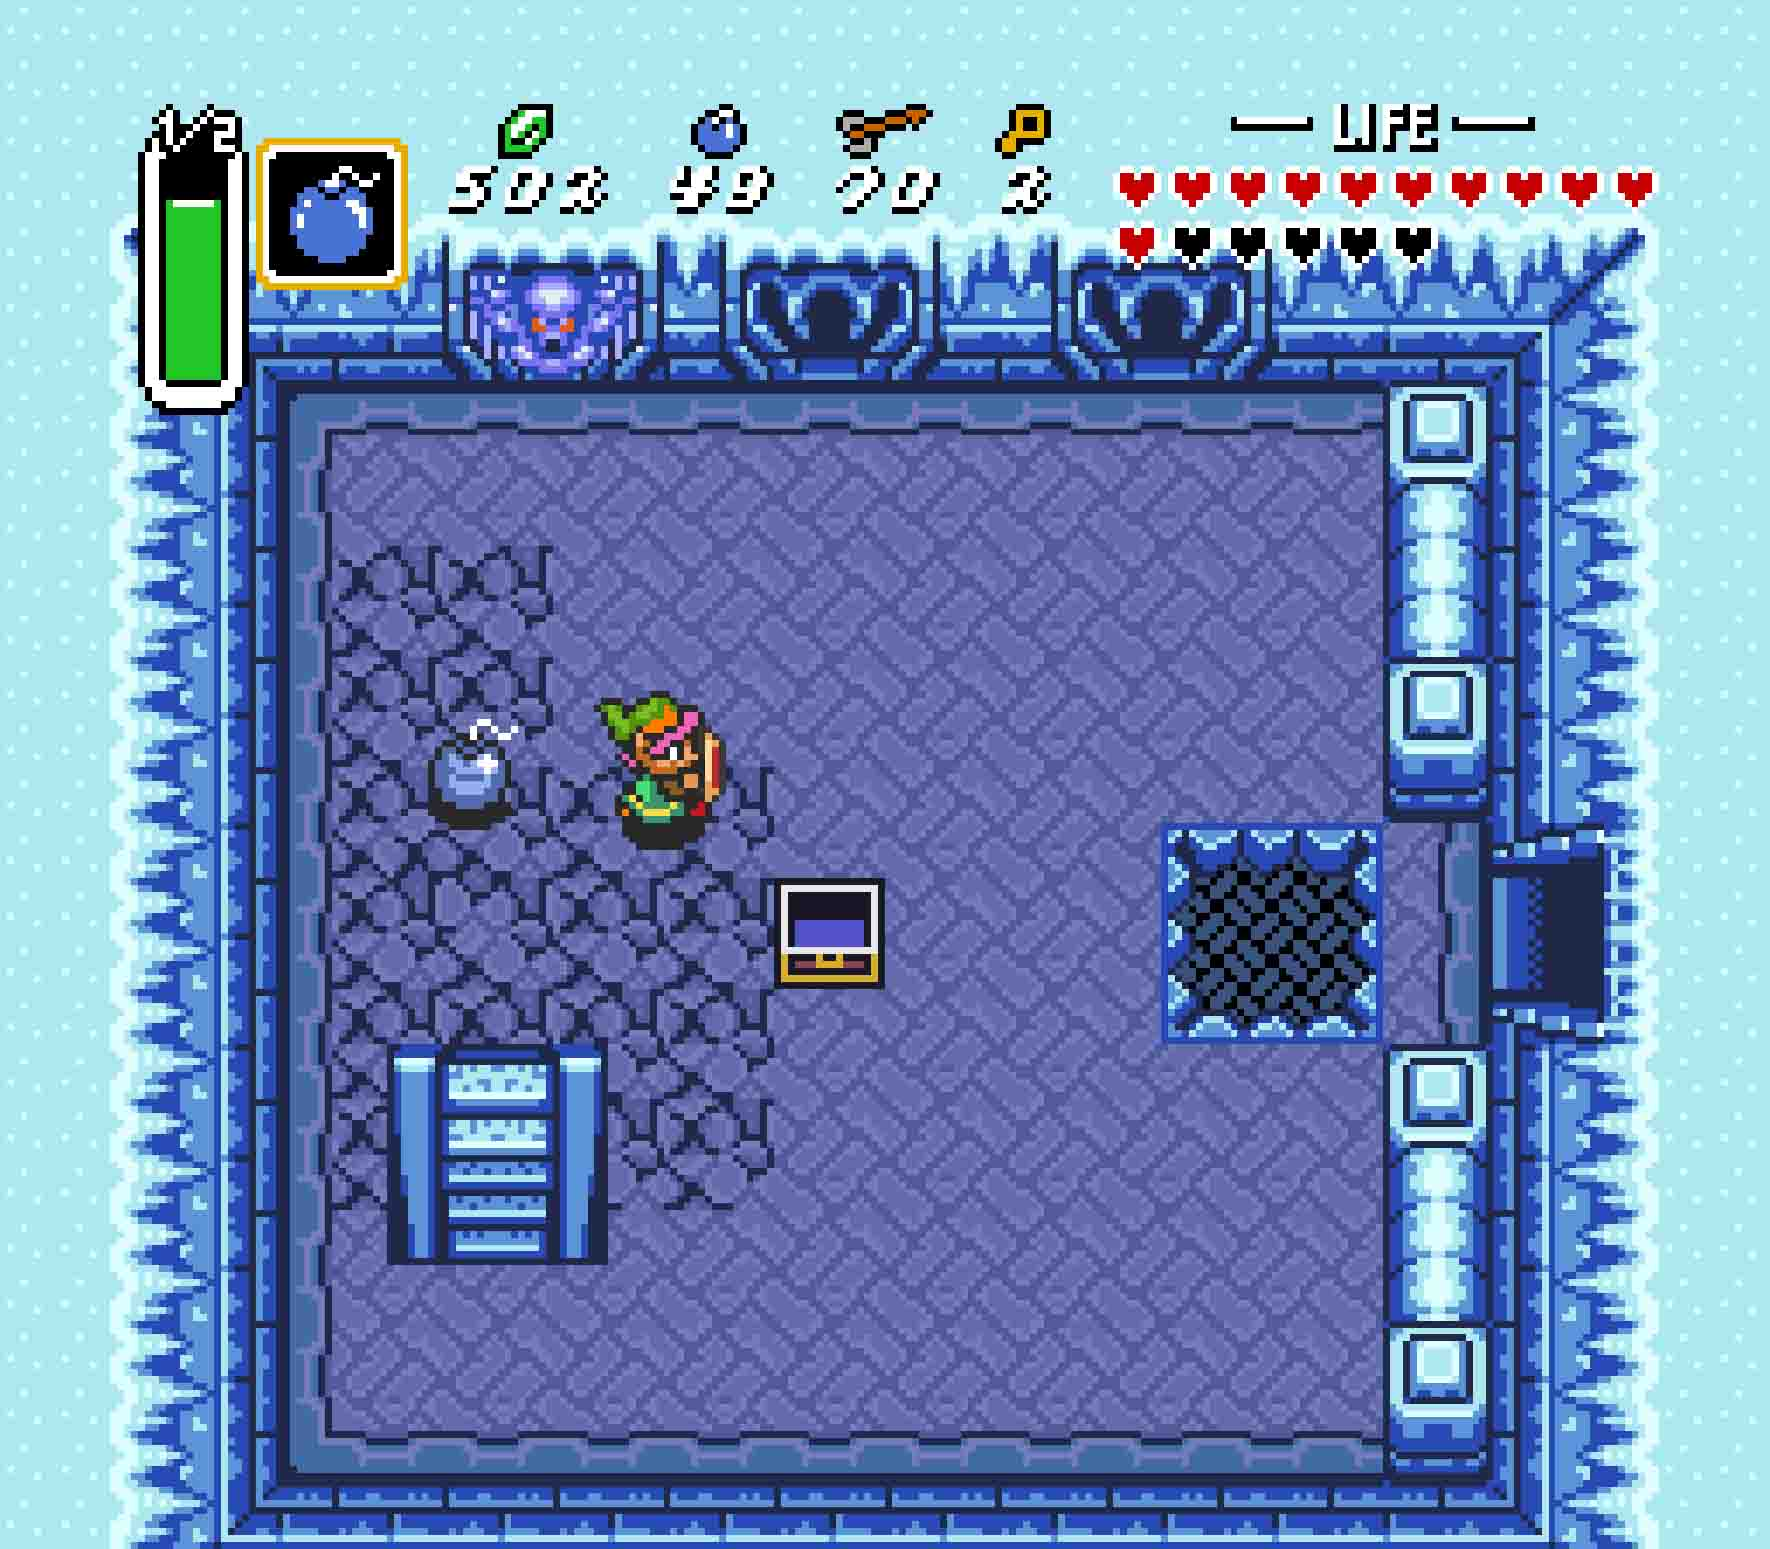 There's a secret route down to the Big Chest, and you need to bomb the floor here to make your way to it.